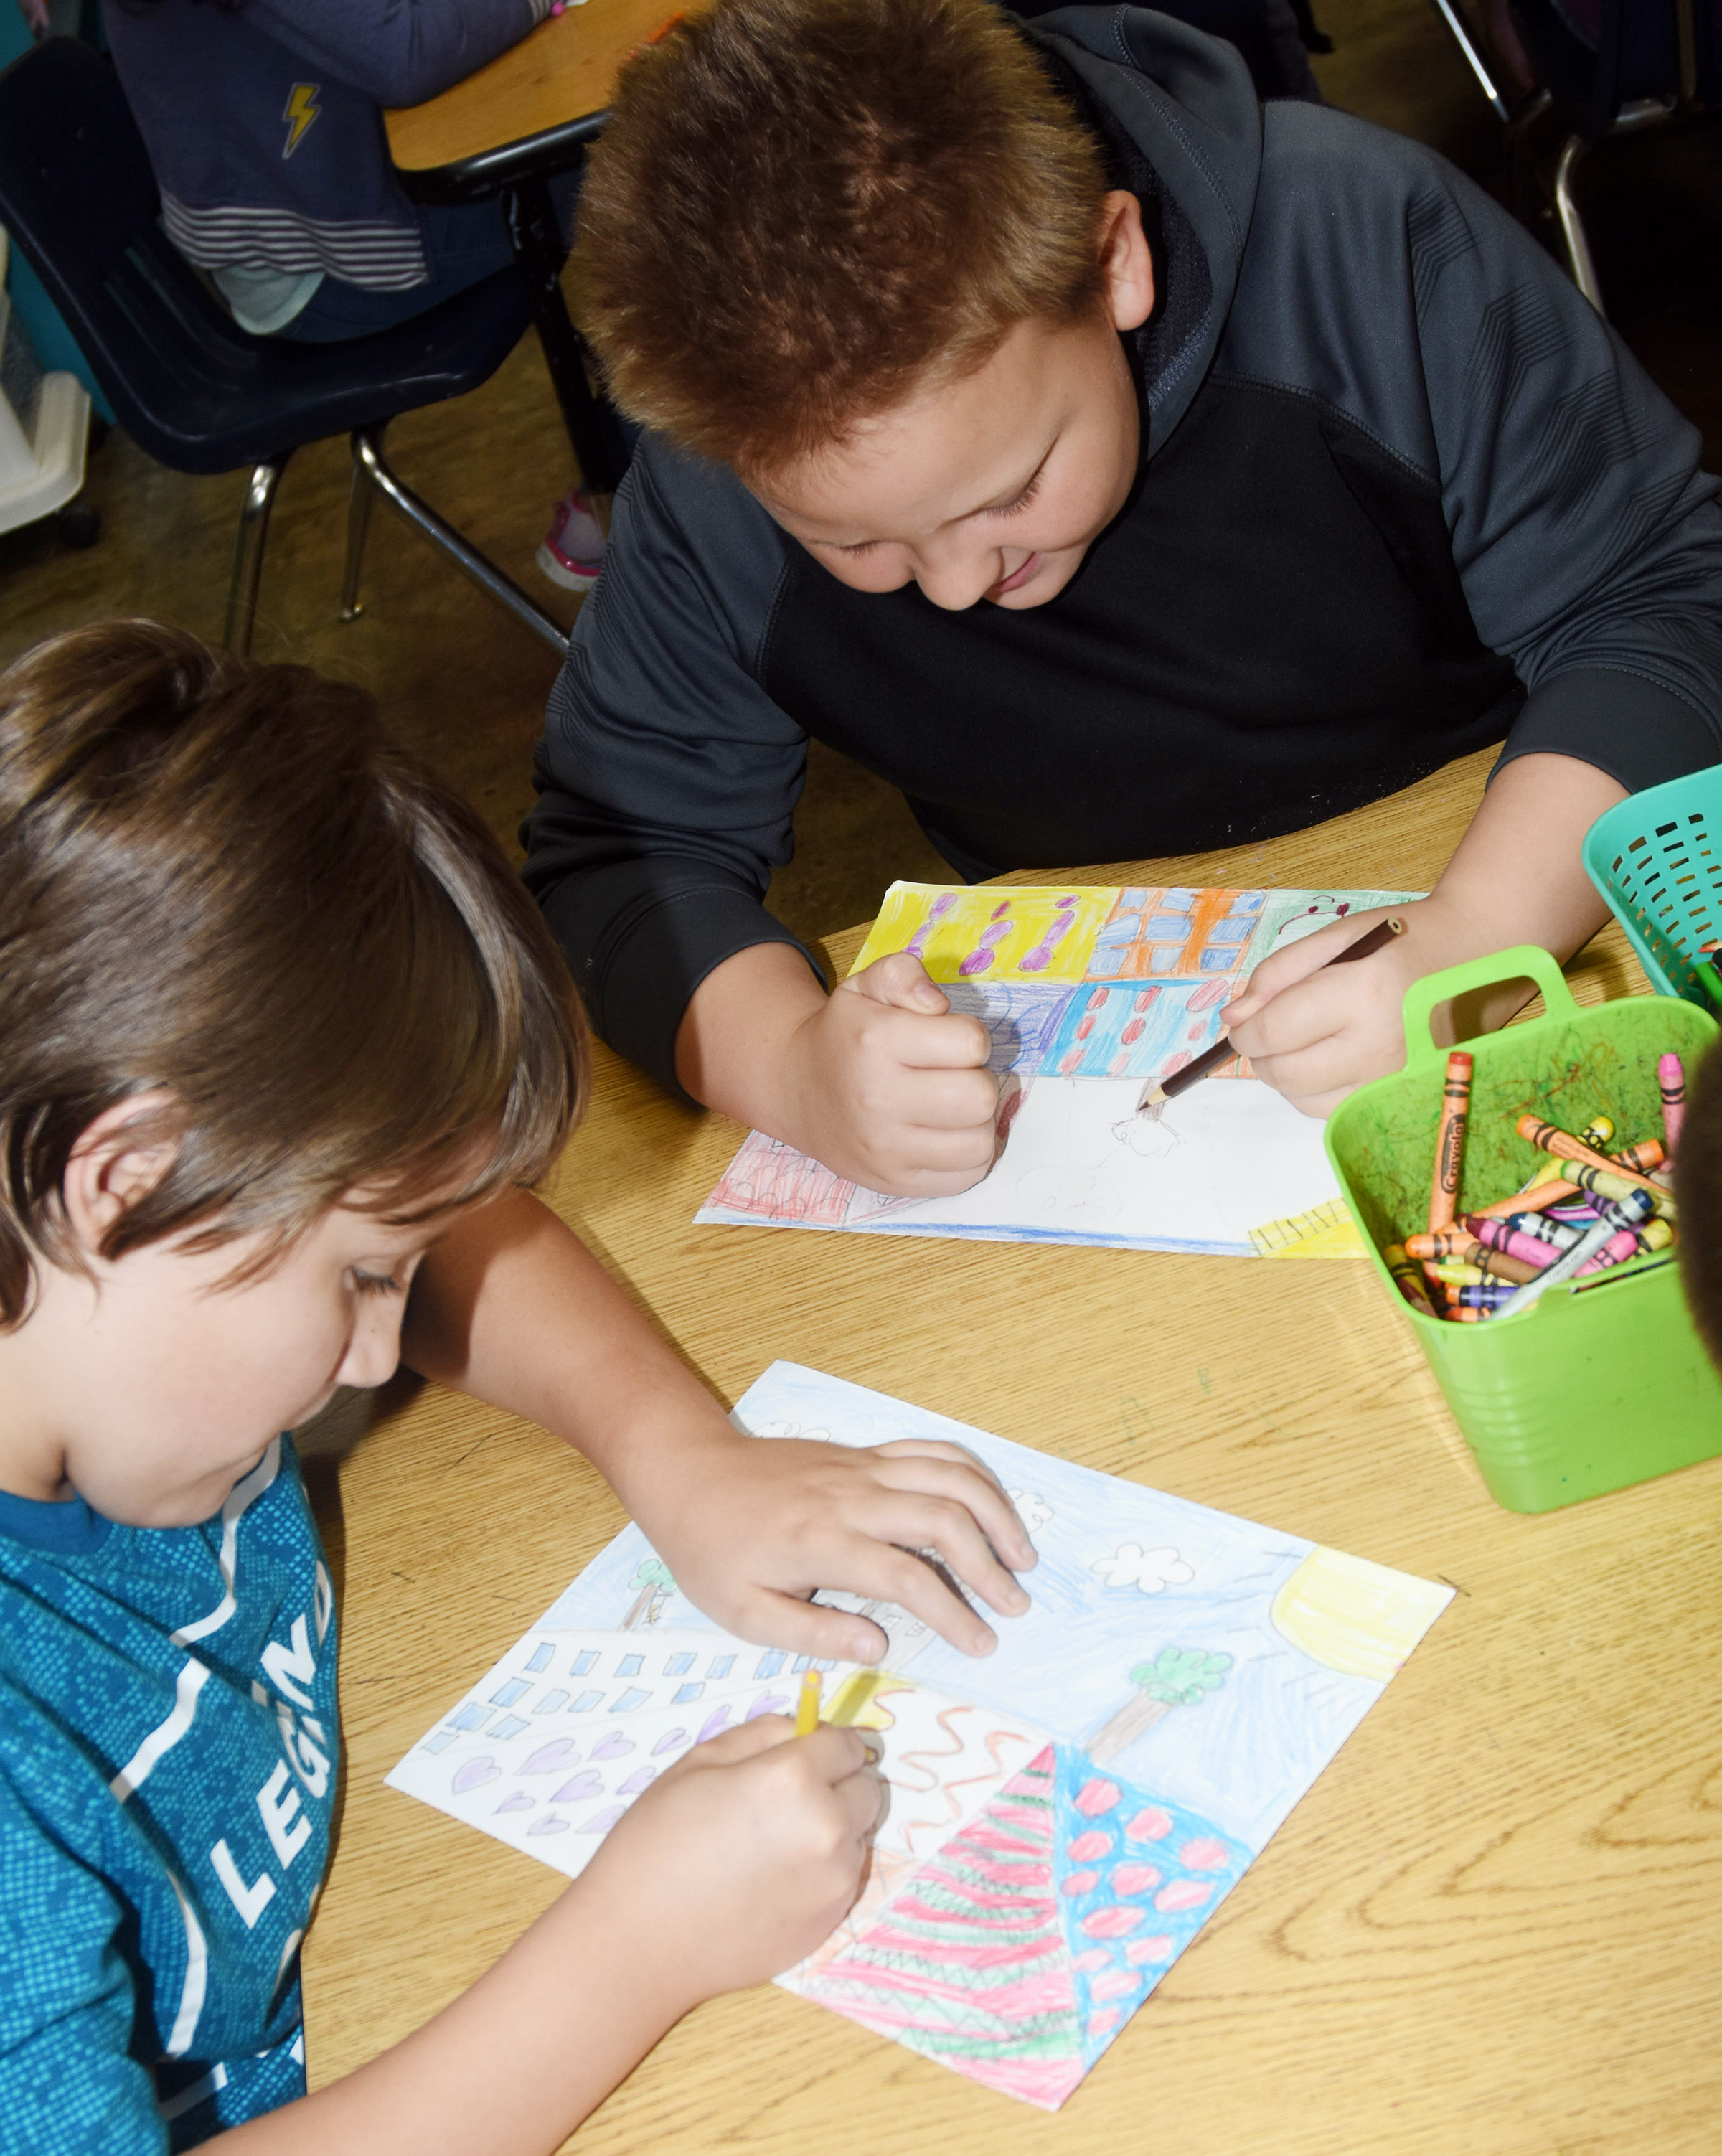 CES fourth-graders Dalton Shively, at left, and Peyton Mitchell color their landscapes.